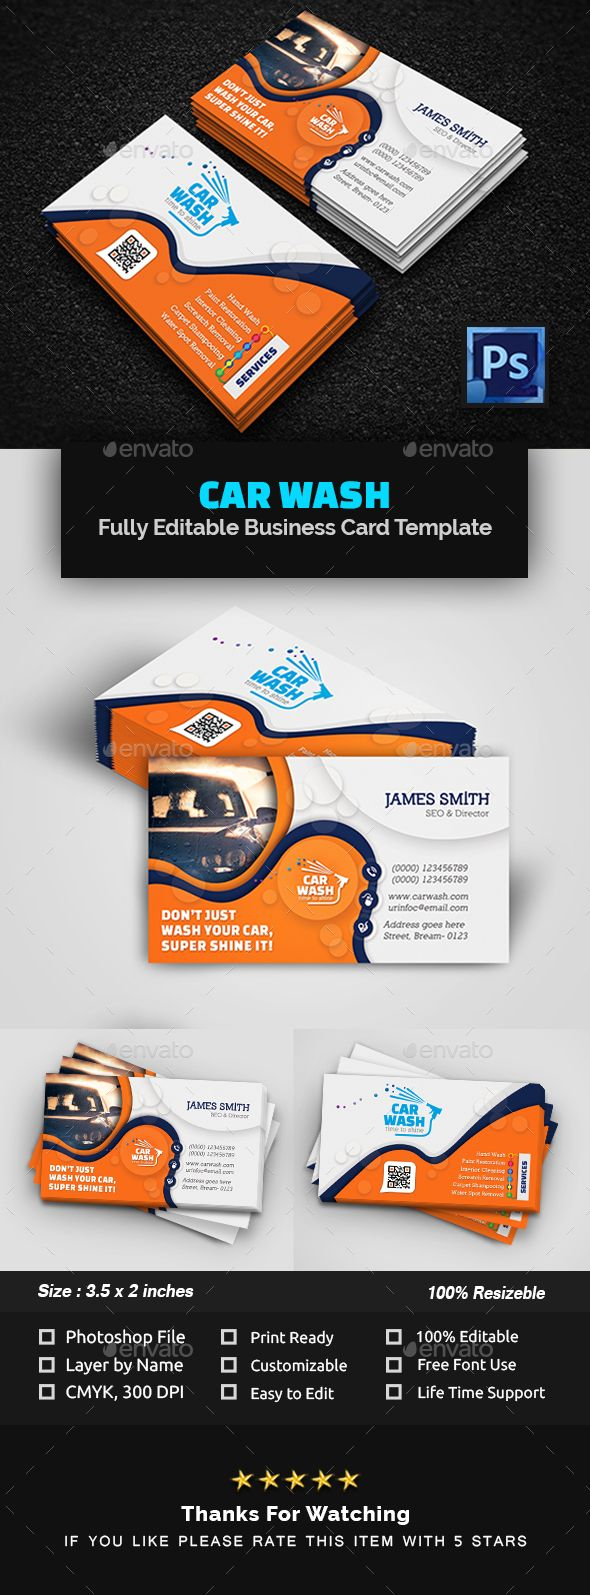 Car Wash Business Card Business Card Template Psd Car Wash Business Business Cards Creative